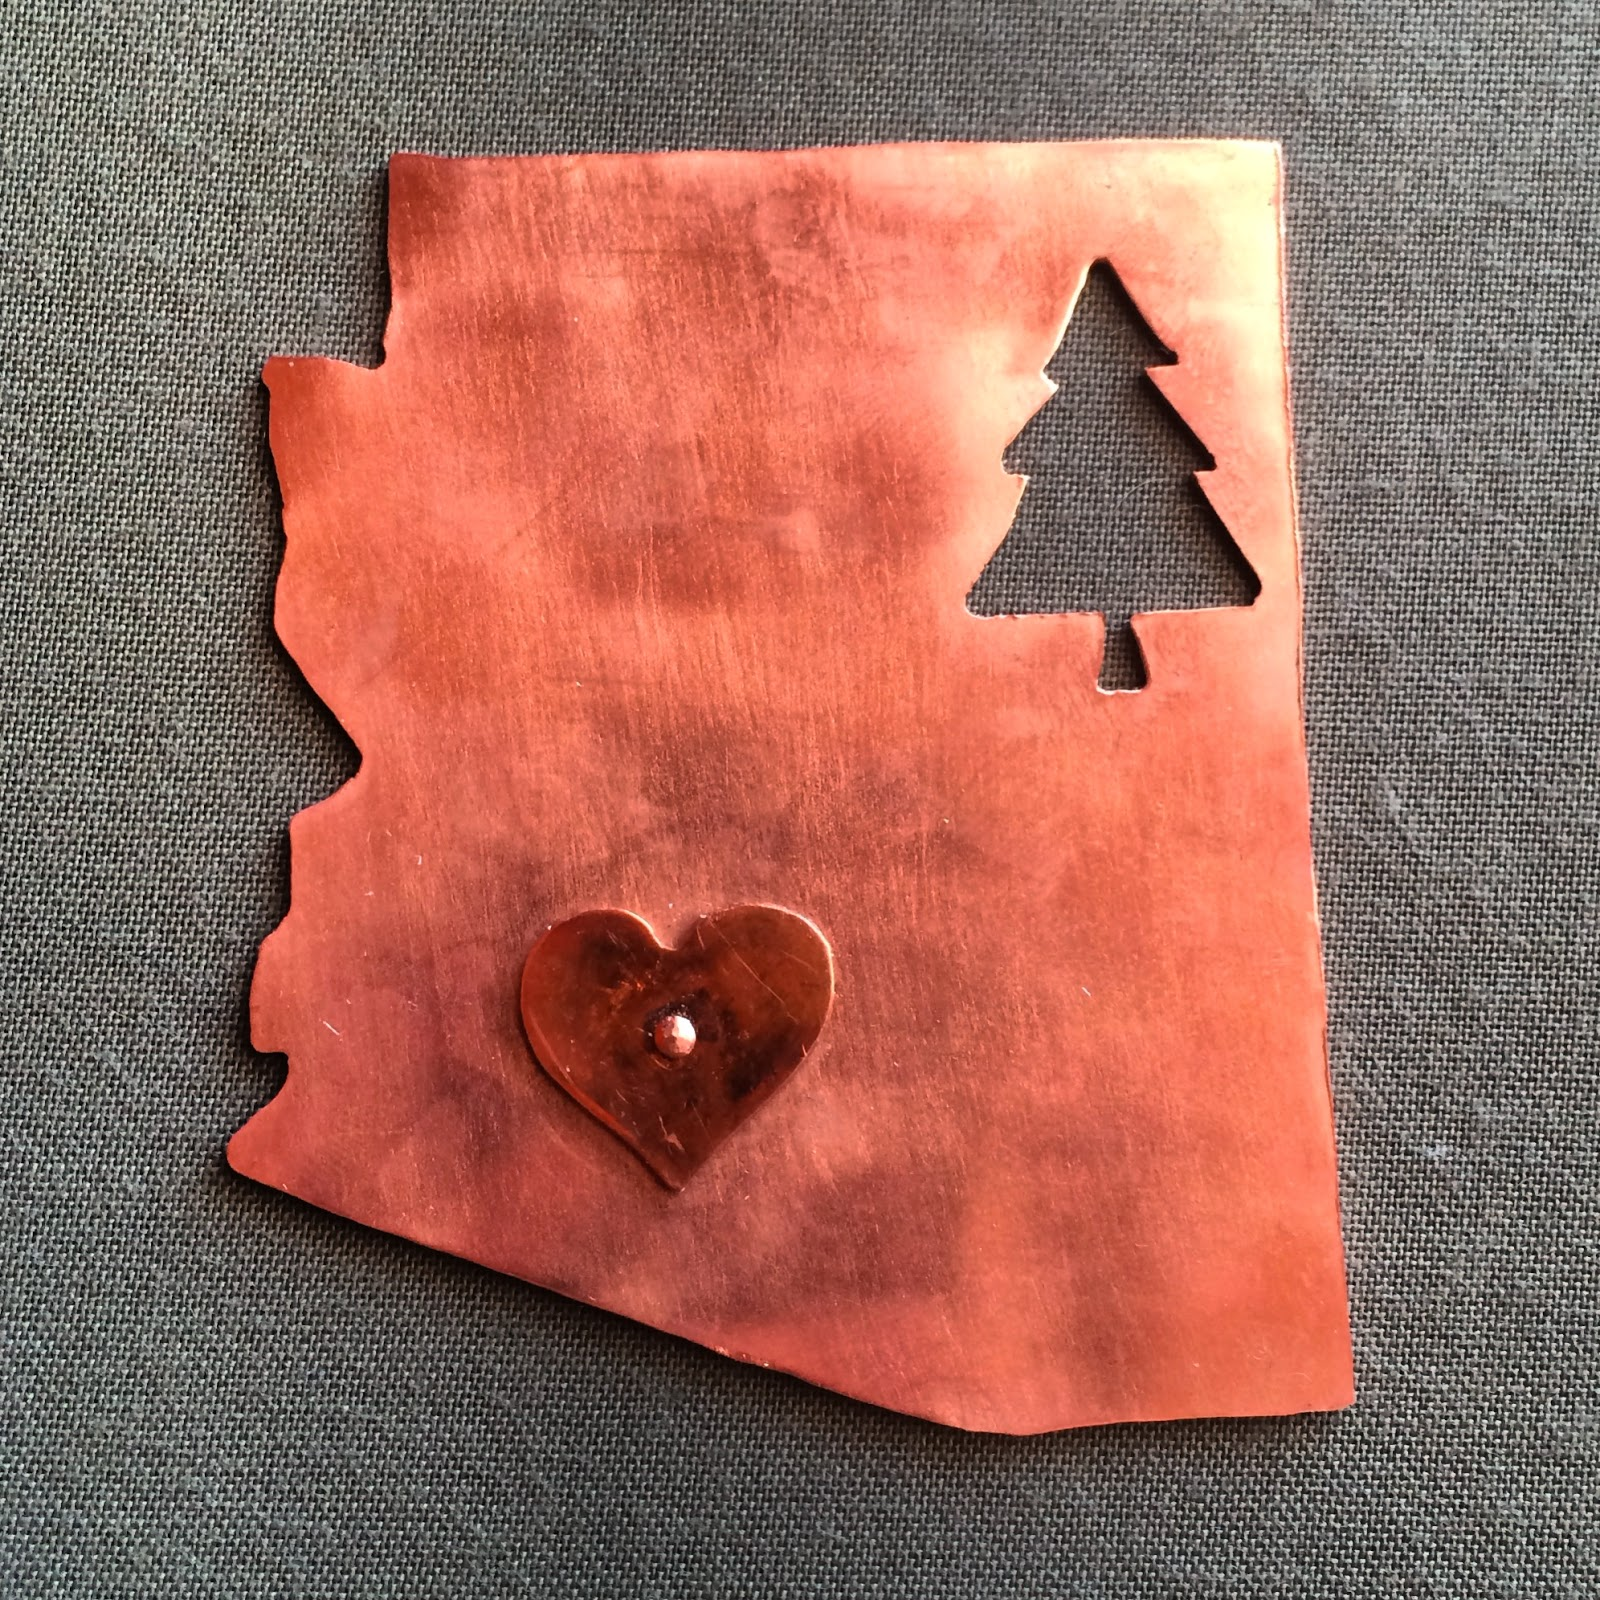 Handmade arizona state copper magnet with a pine tree cutout and heart riveted to the top